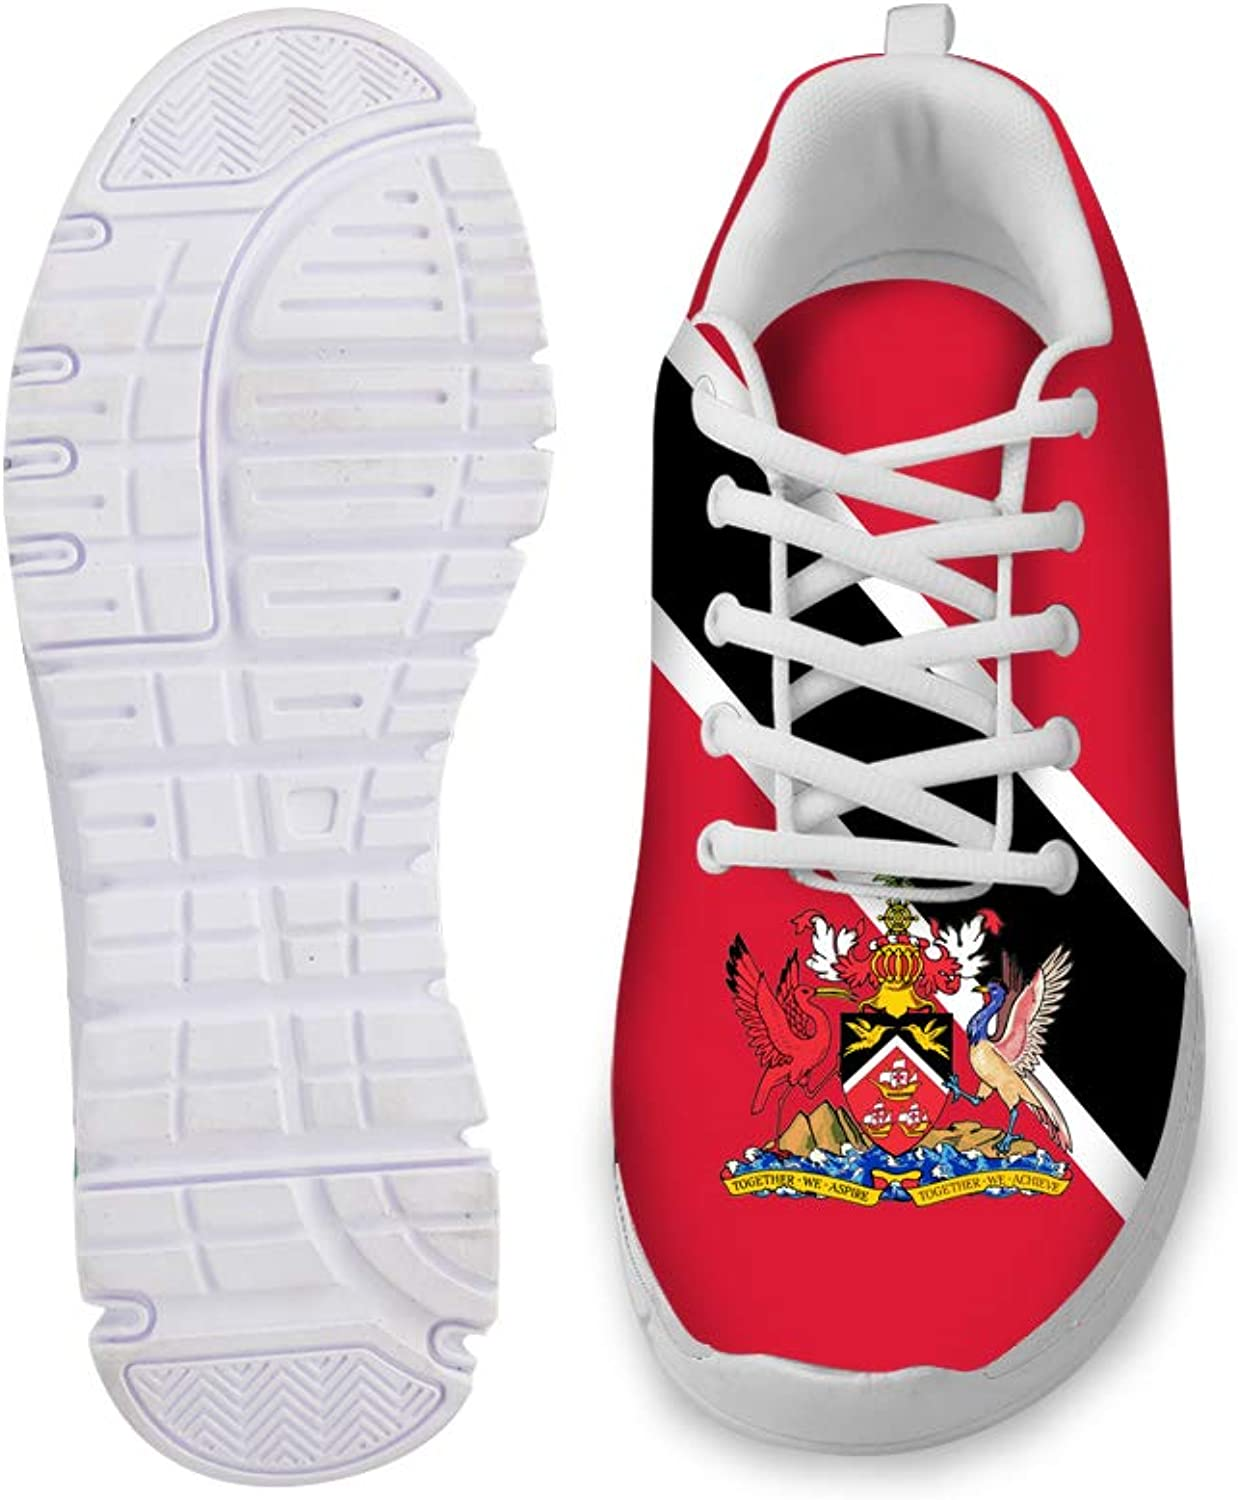 Owaheson Lace-up Sneaker Training shoes Mens Womens Trinidad and Tobago Flag National Emblem